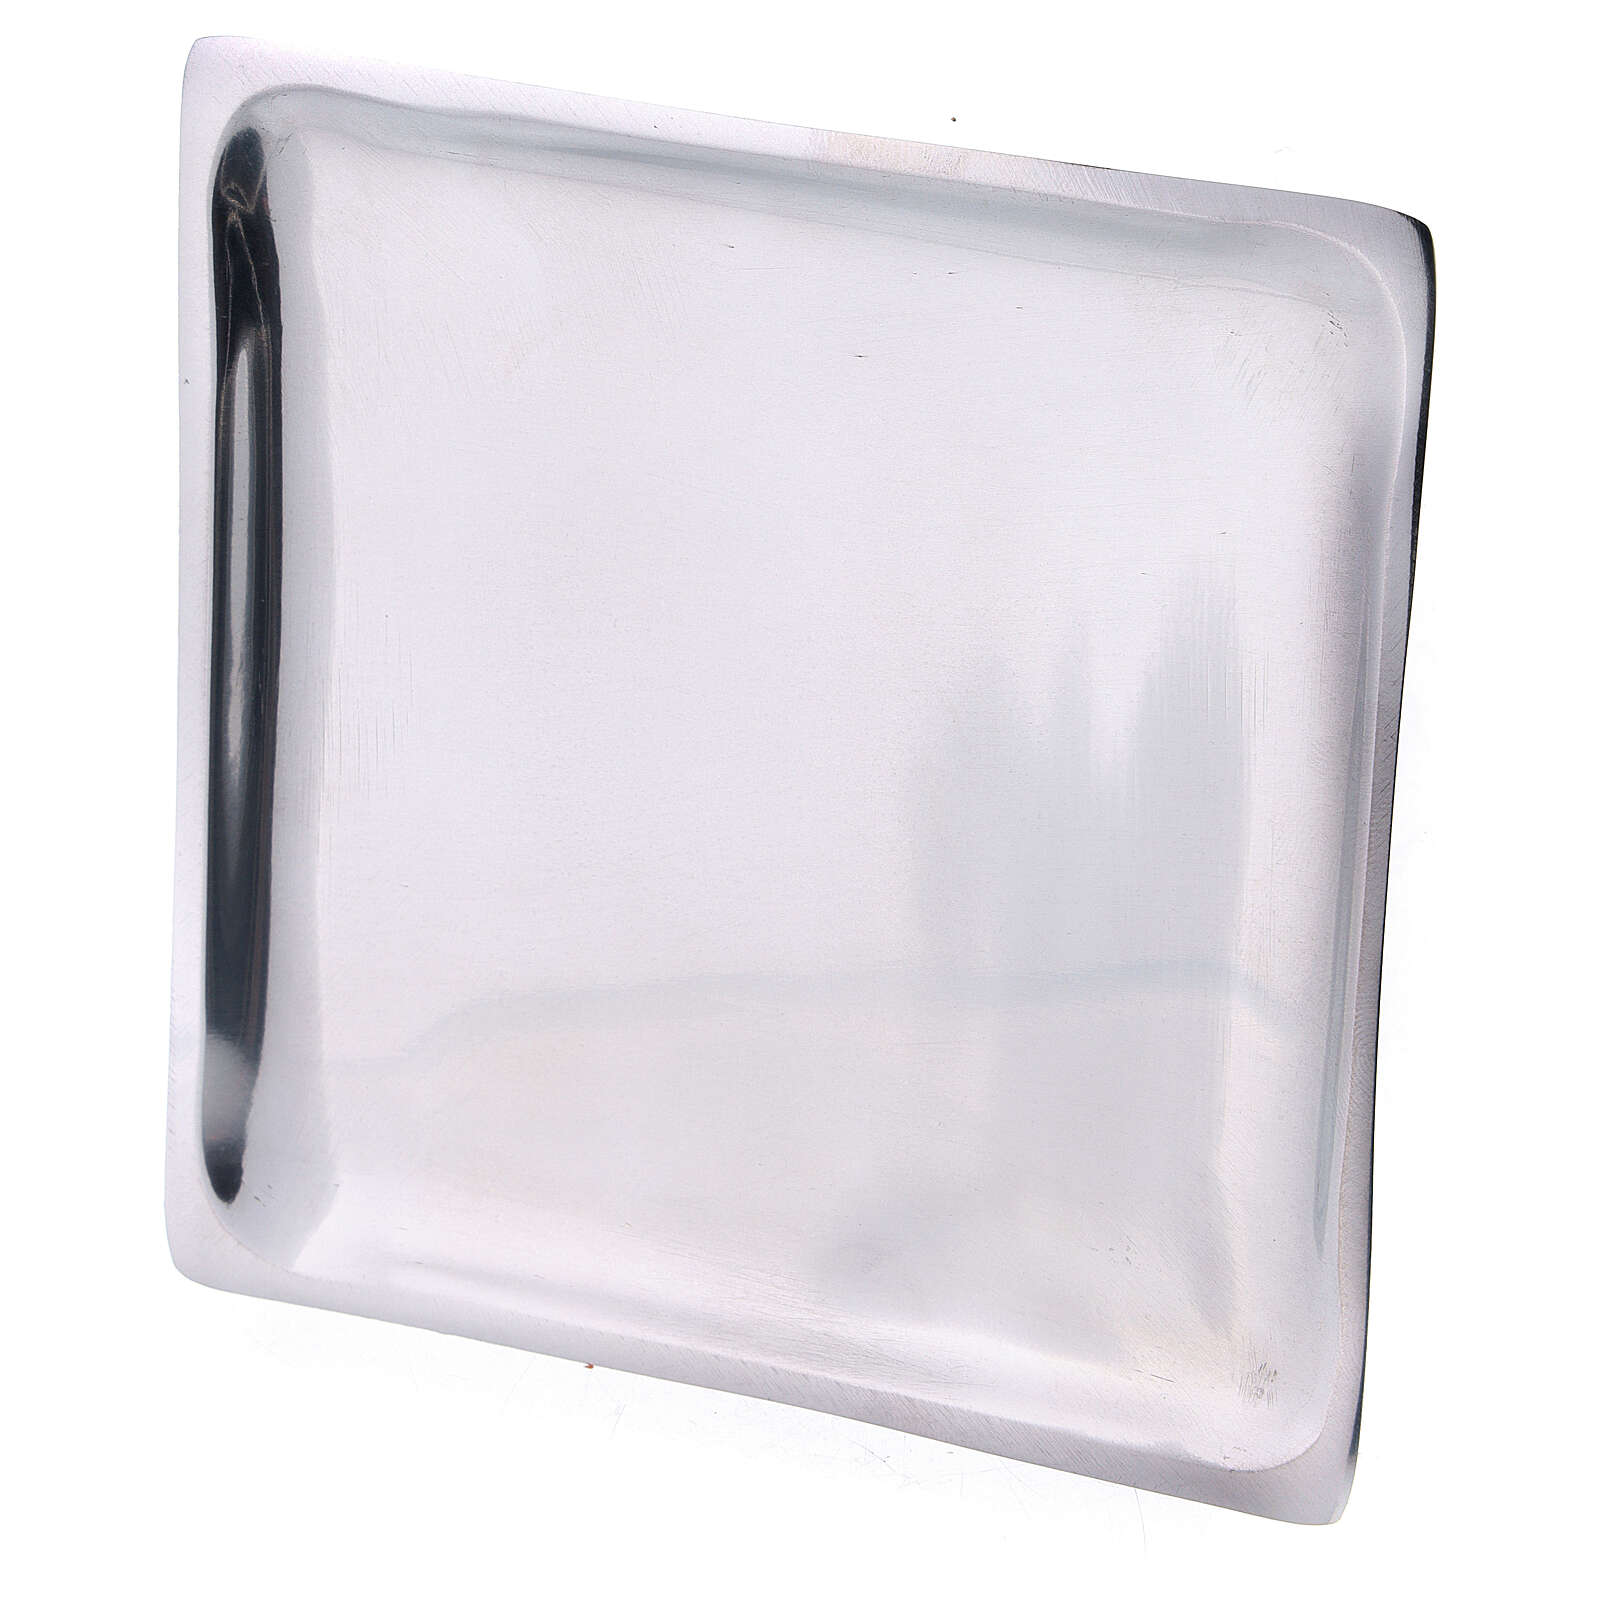 Square plate for candles 4 1/4x4 1/4 in polished finish 3